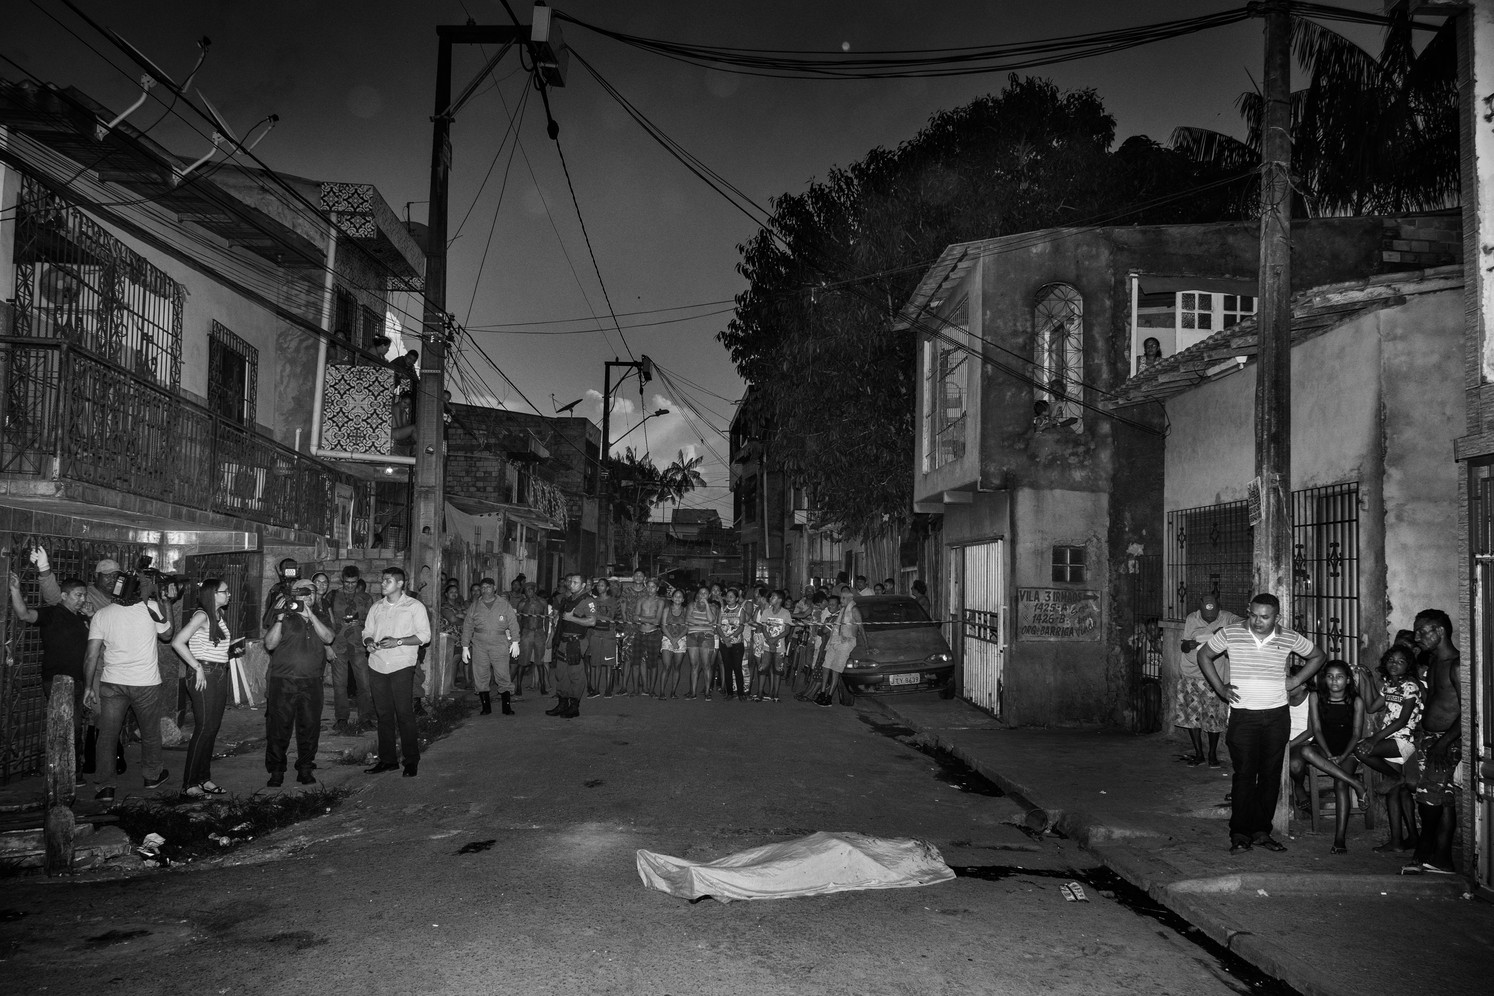 The crime scene of an homicide in Guama, one of the most violent neighborhood of Belem. According to police officers the man was shot to death for drug debts.